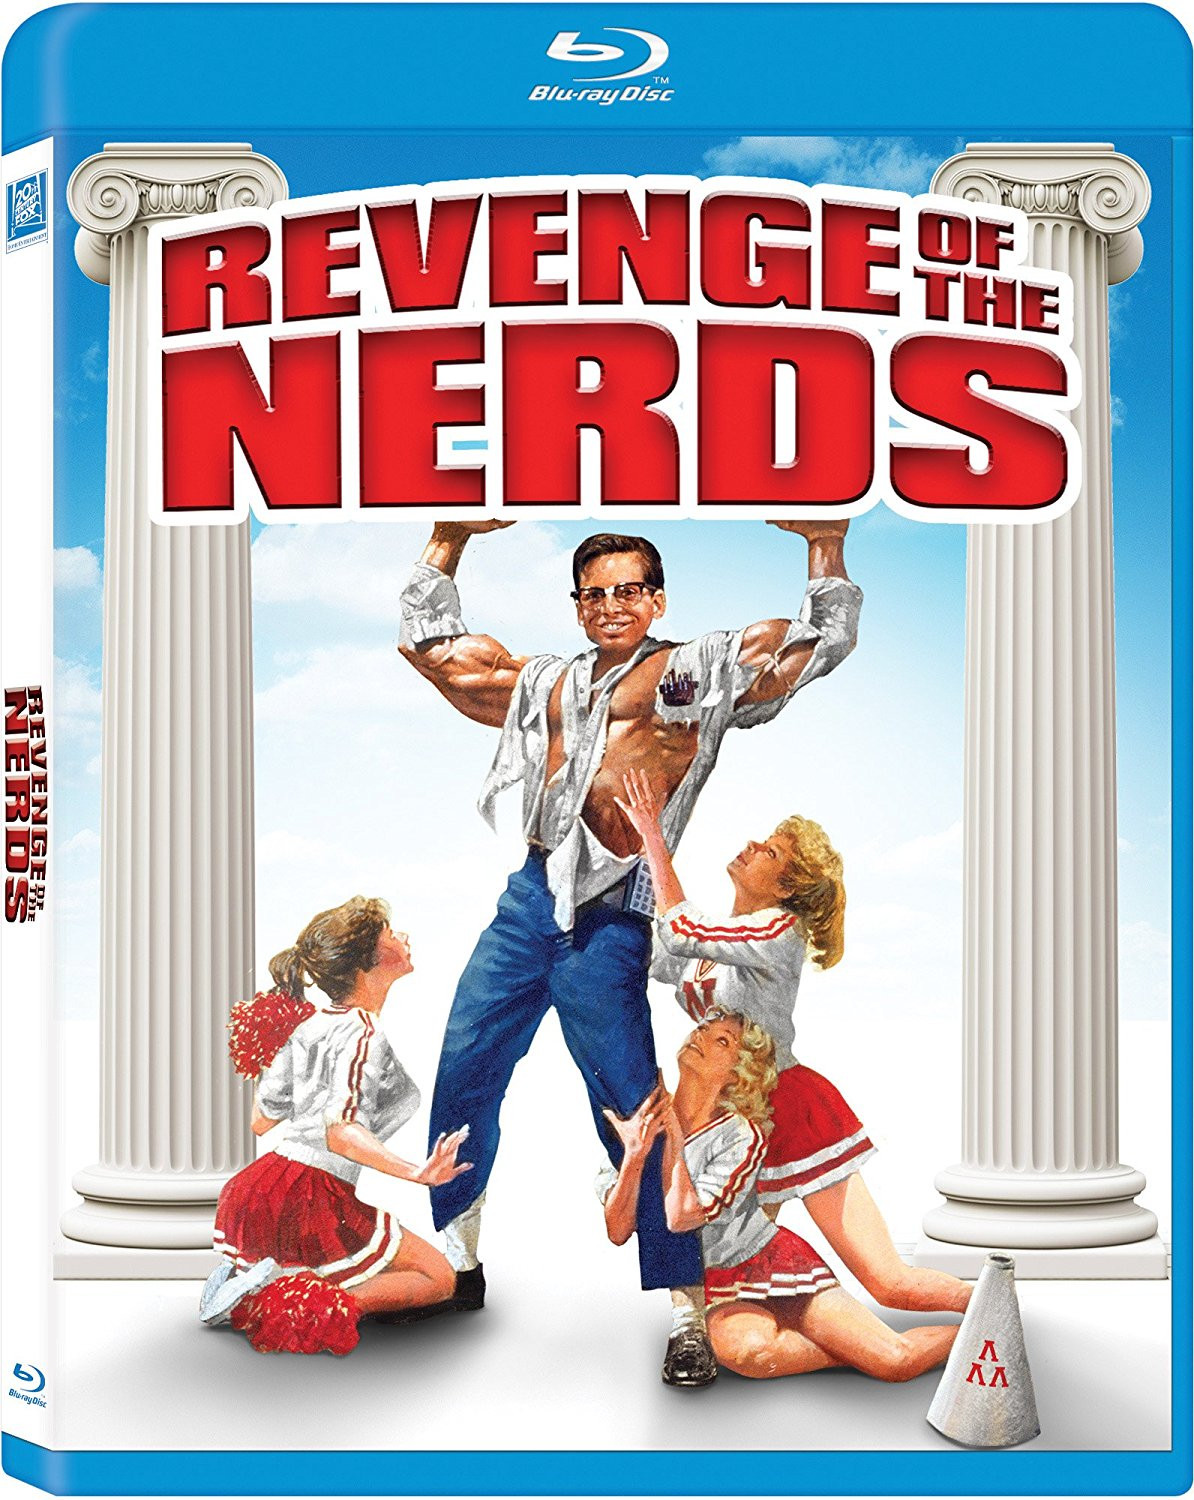 Revenge of the Nerds: 10 Awesomely Bad 80s Movies I Can't Wait to Watch With My Kids | Mommy Evolution